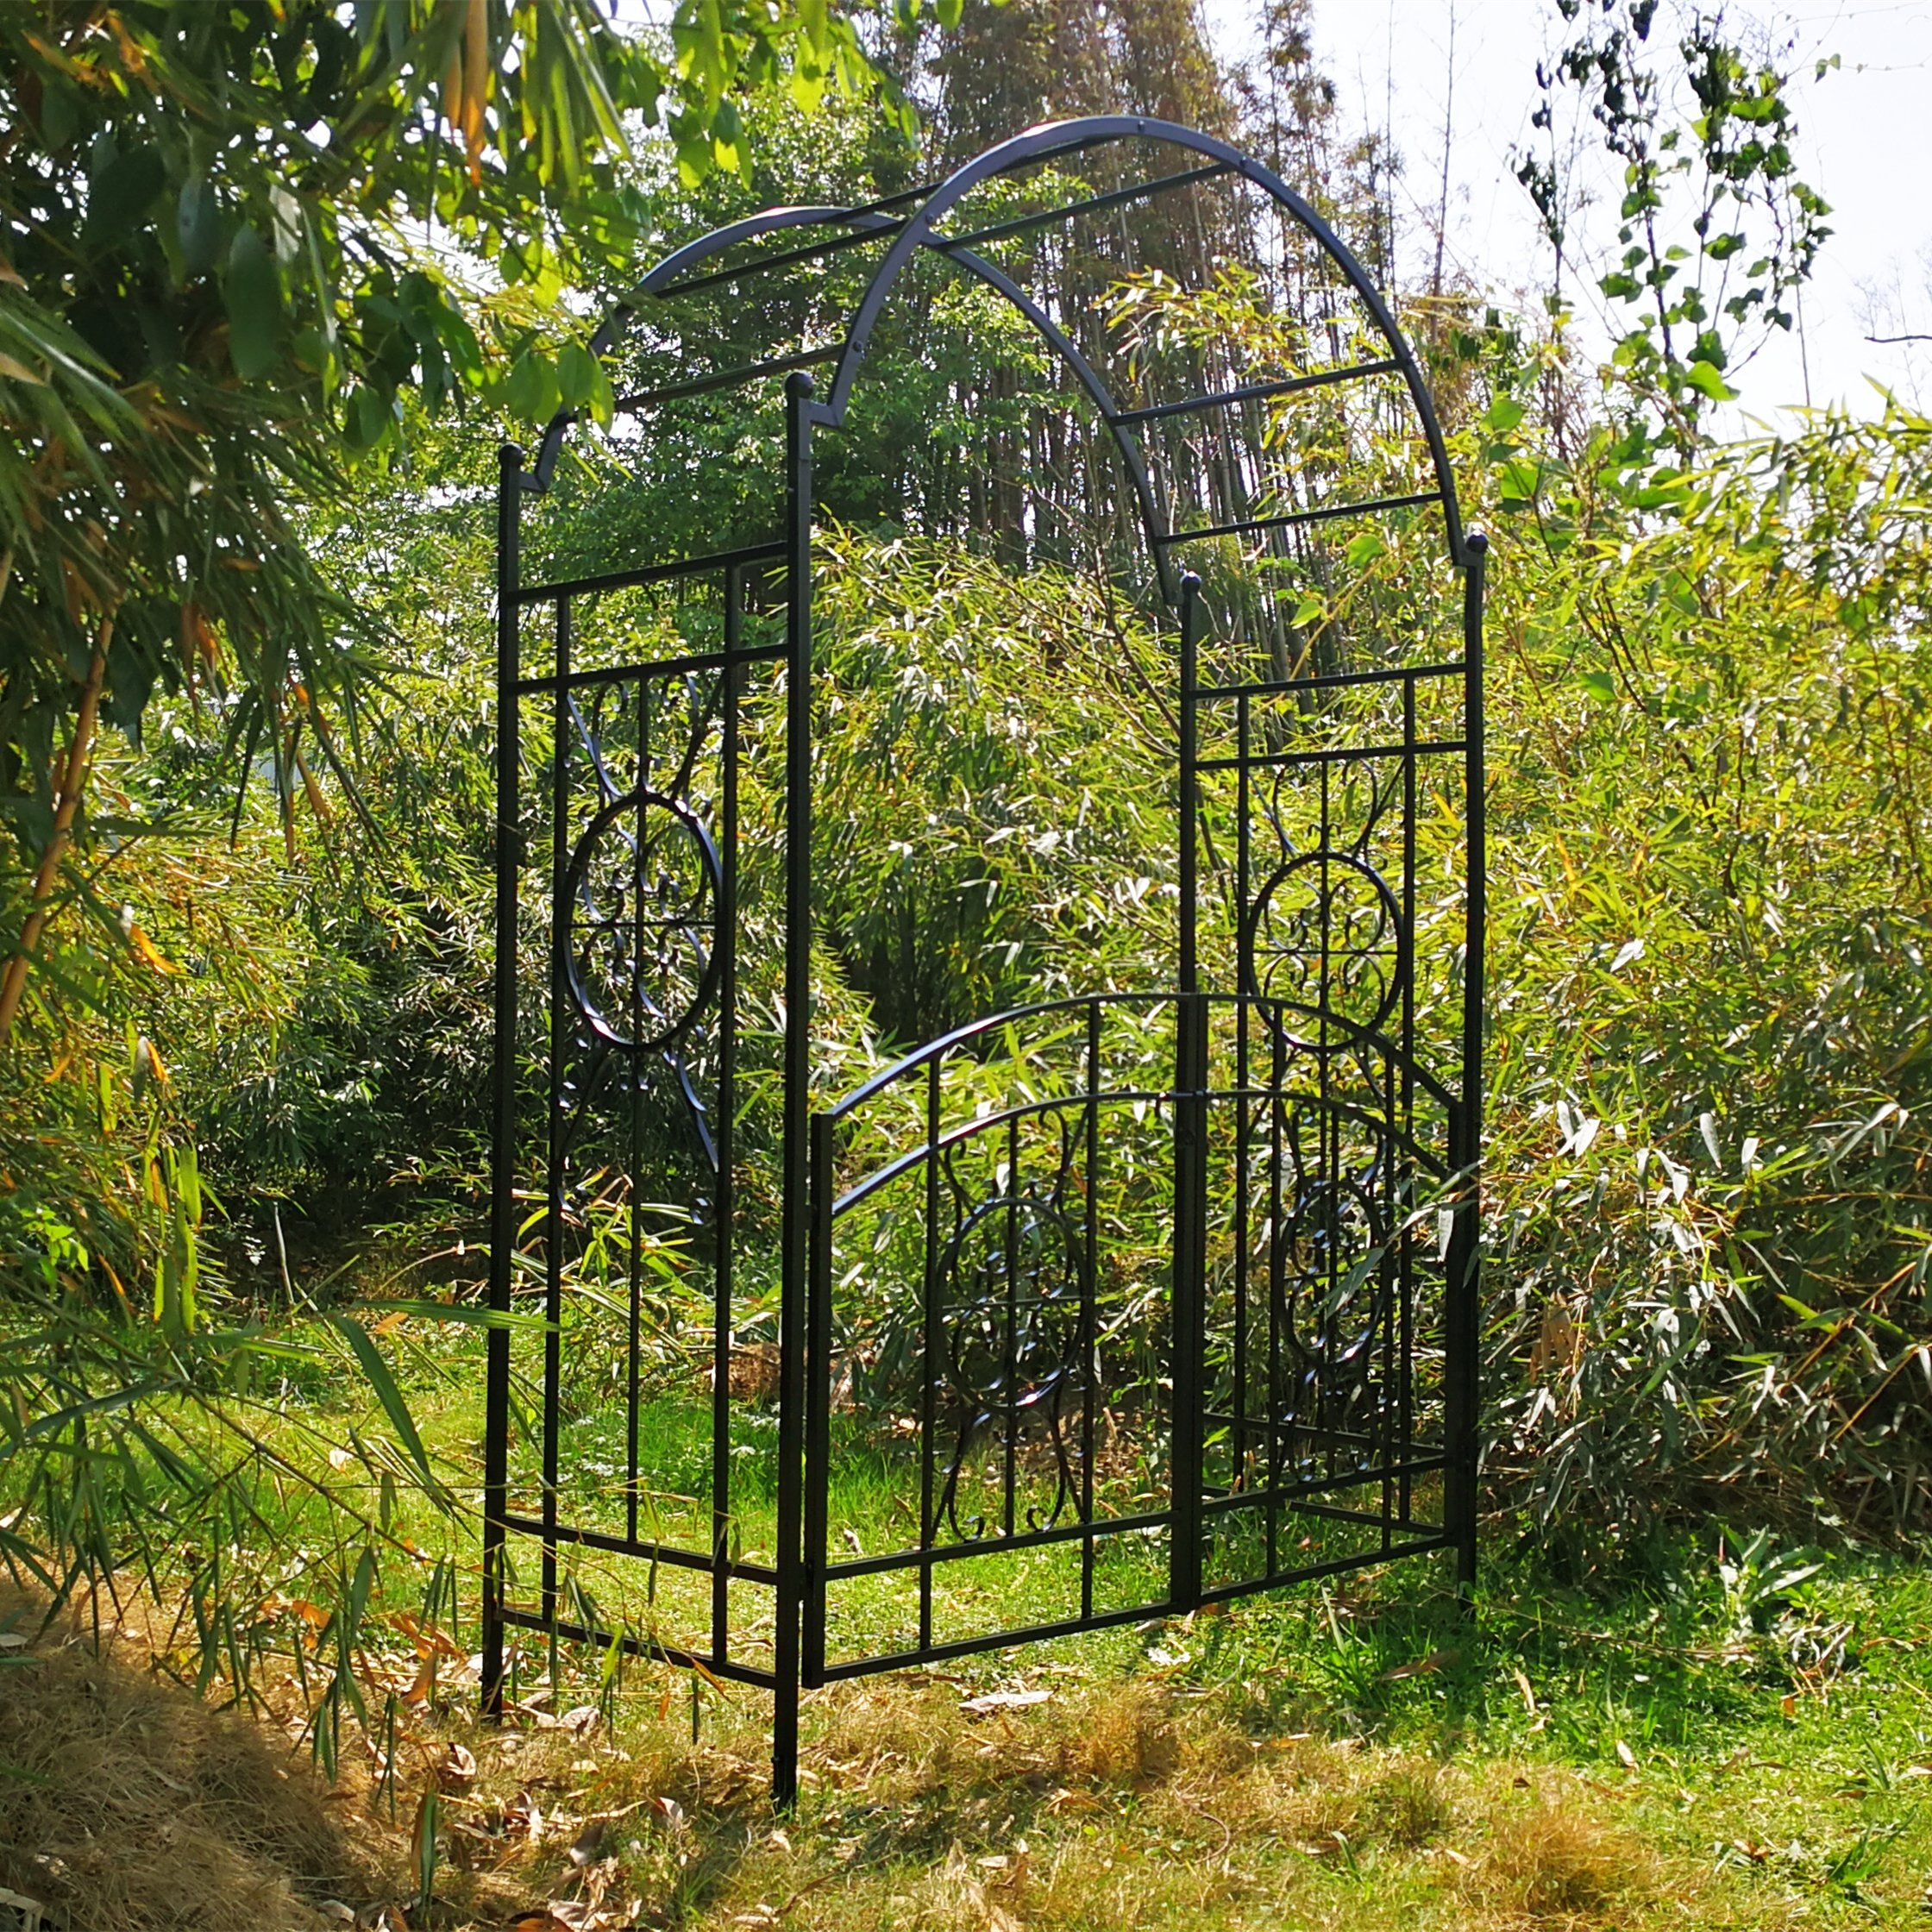 OUTOUR Garden Arch with Gate, 84H x 53D x 23W, Garden Arbor Arbour Archway for Climbing Plants Roses Vines, Outdoor Garden Lawn Backyard Patio, Black